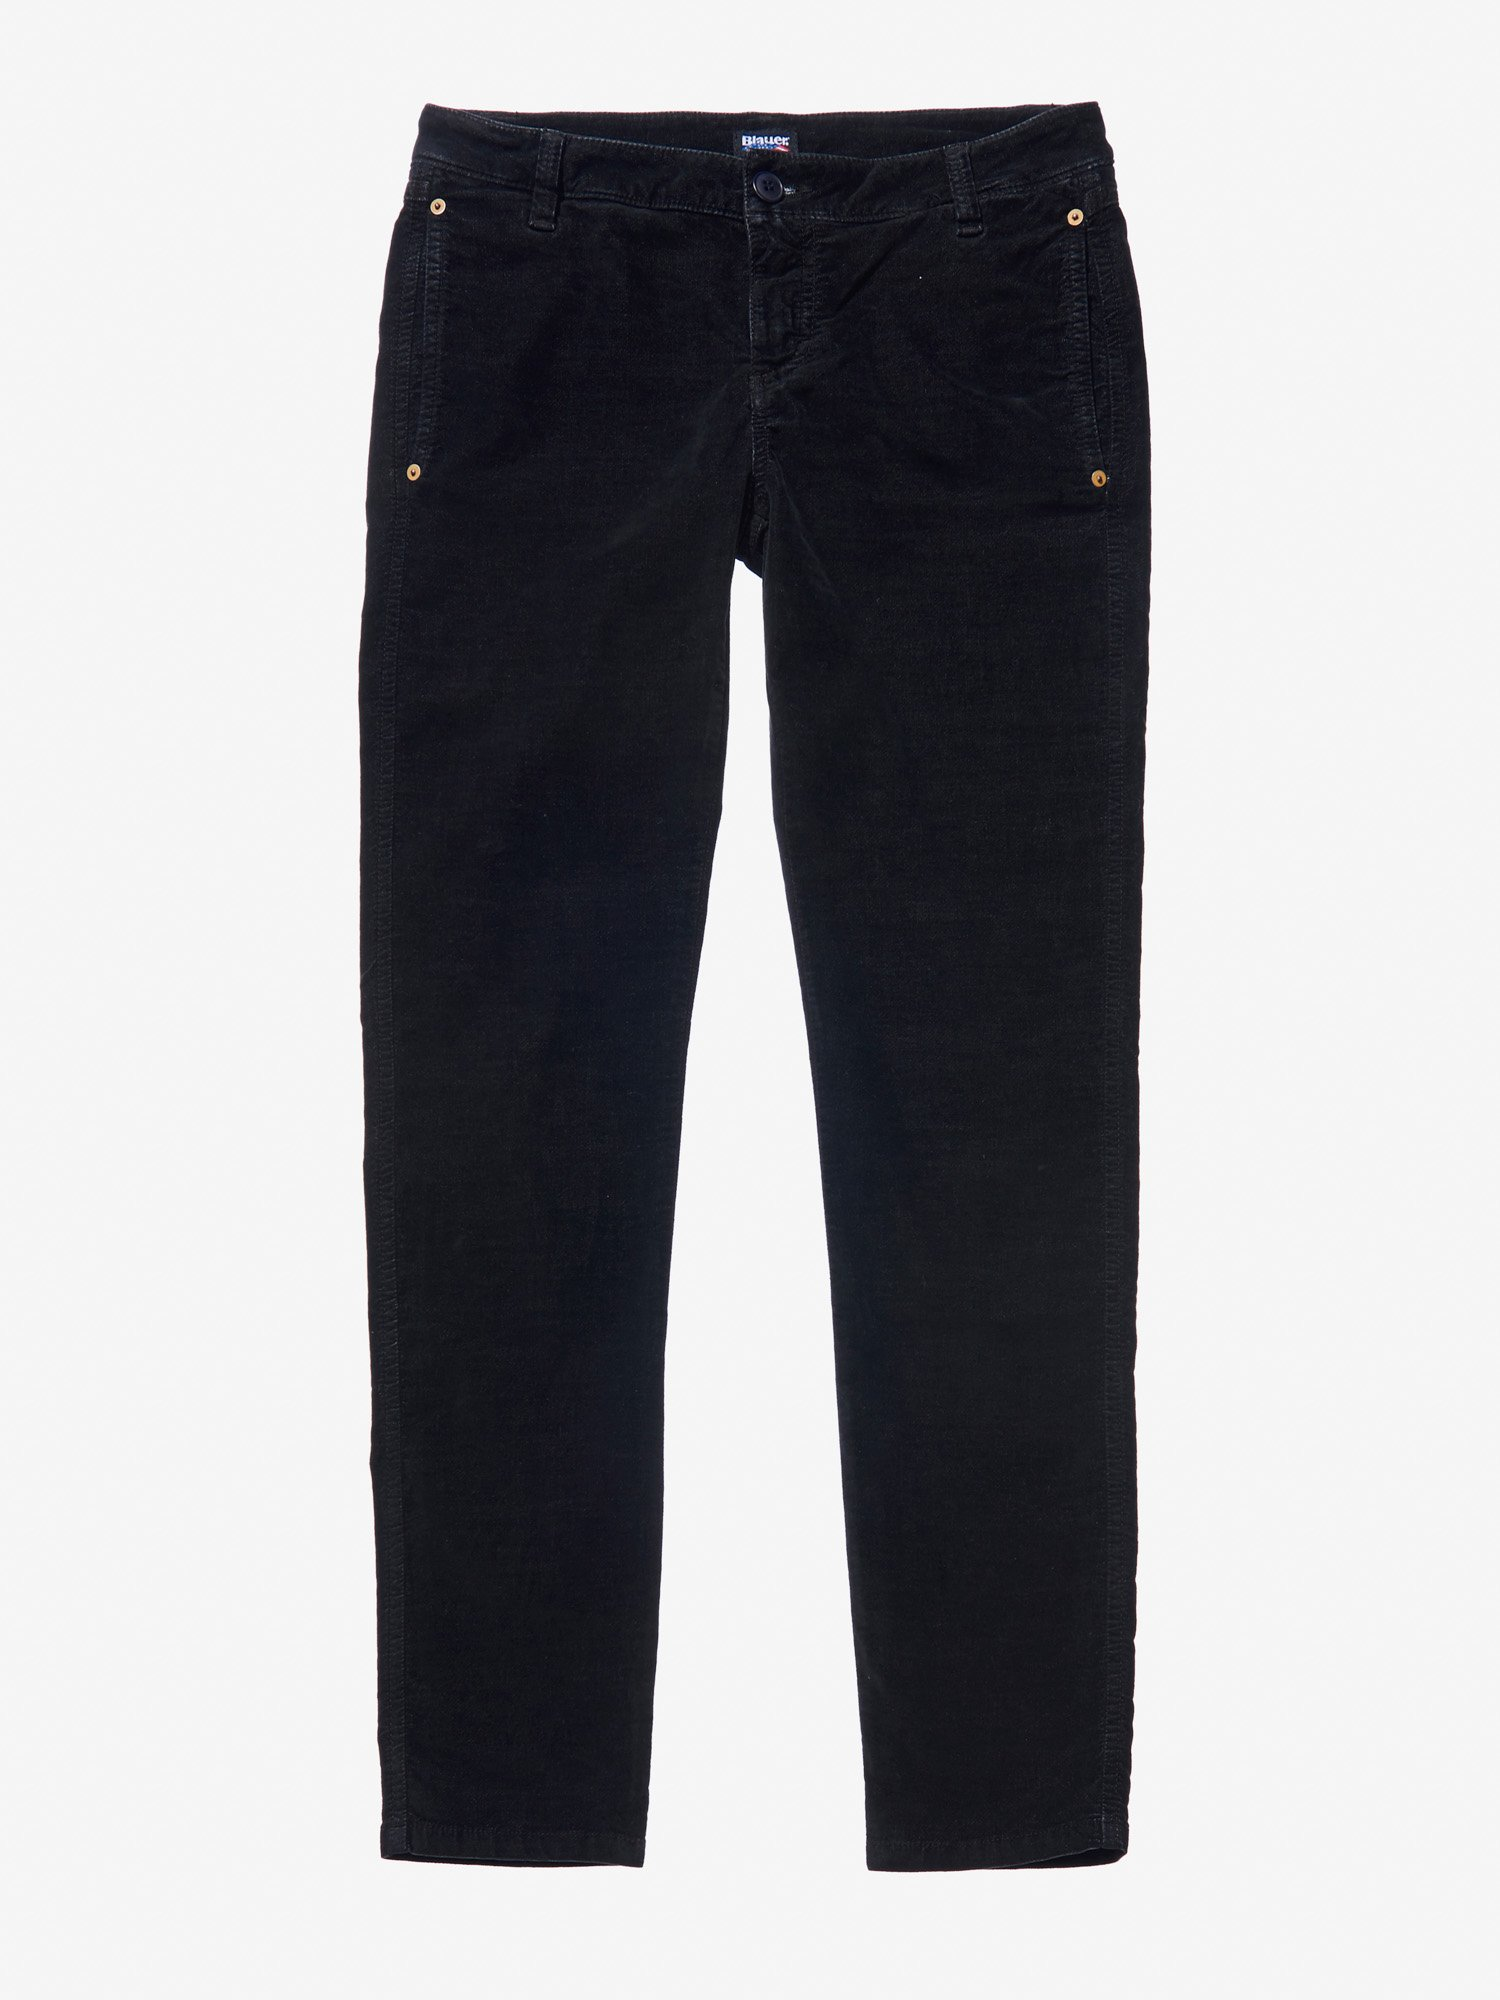 PANTALONE IN VELLUTO MILLE RIGHE - Blauer